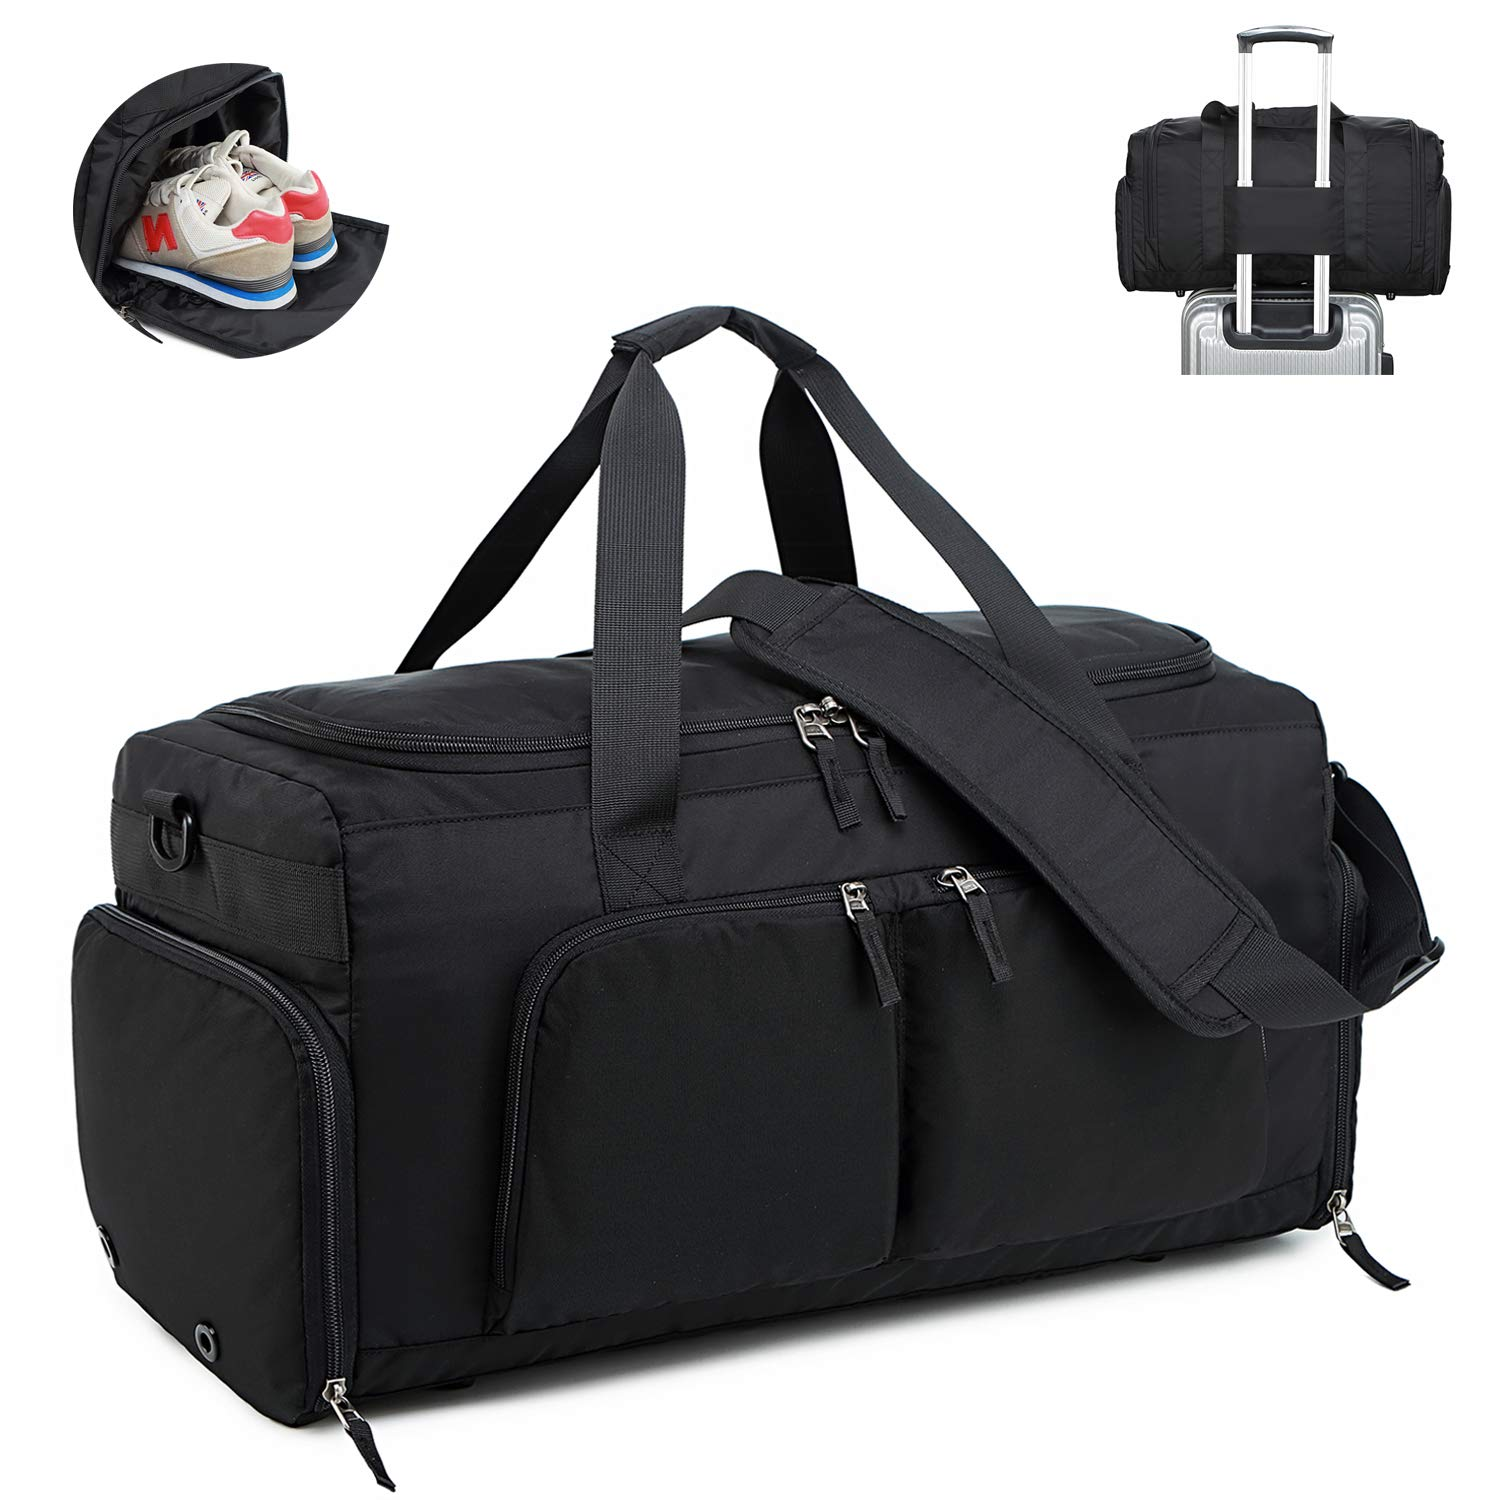 d15e0d8be Amazon.com | Lightweight Travel Duffle Bag Sport Gym Bag for Men and Women  Overnight Duffel Bag with Shoe Compartment (Black with Shoe Compartment) |  Sports ...